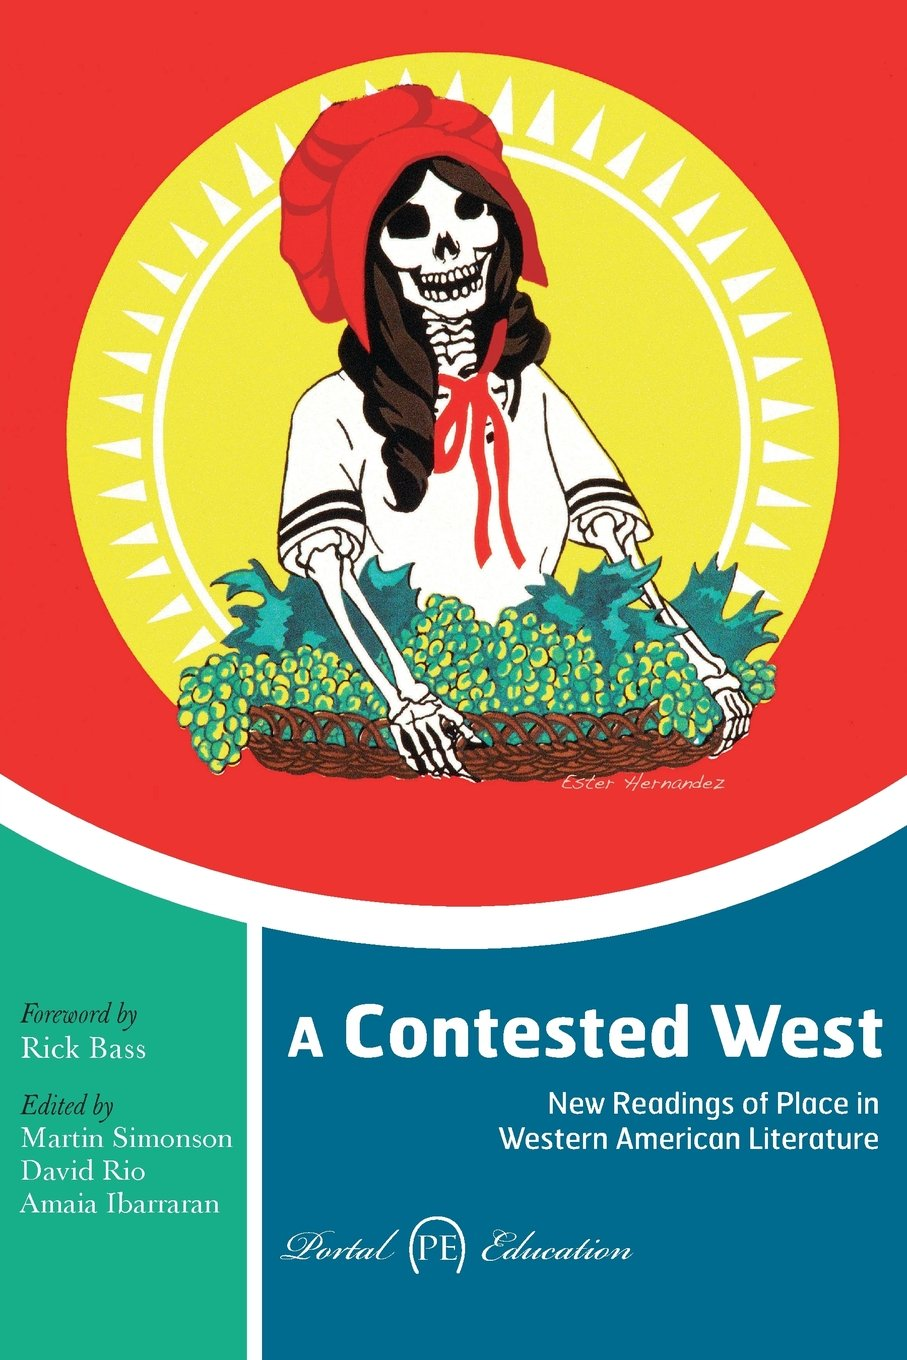 A Contested West: New Readings of Place in the American